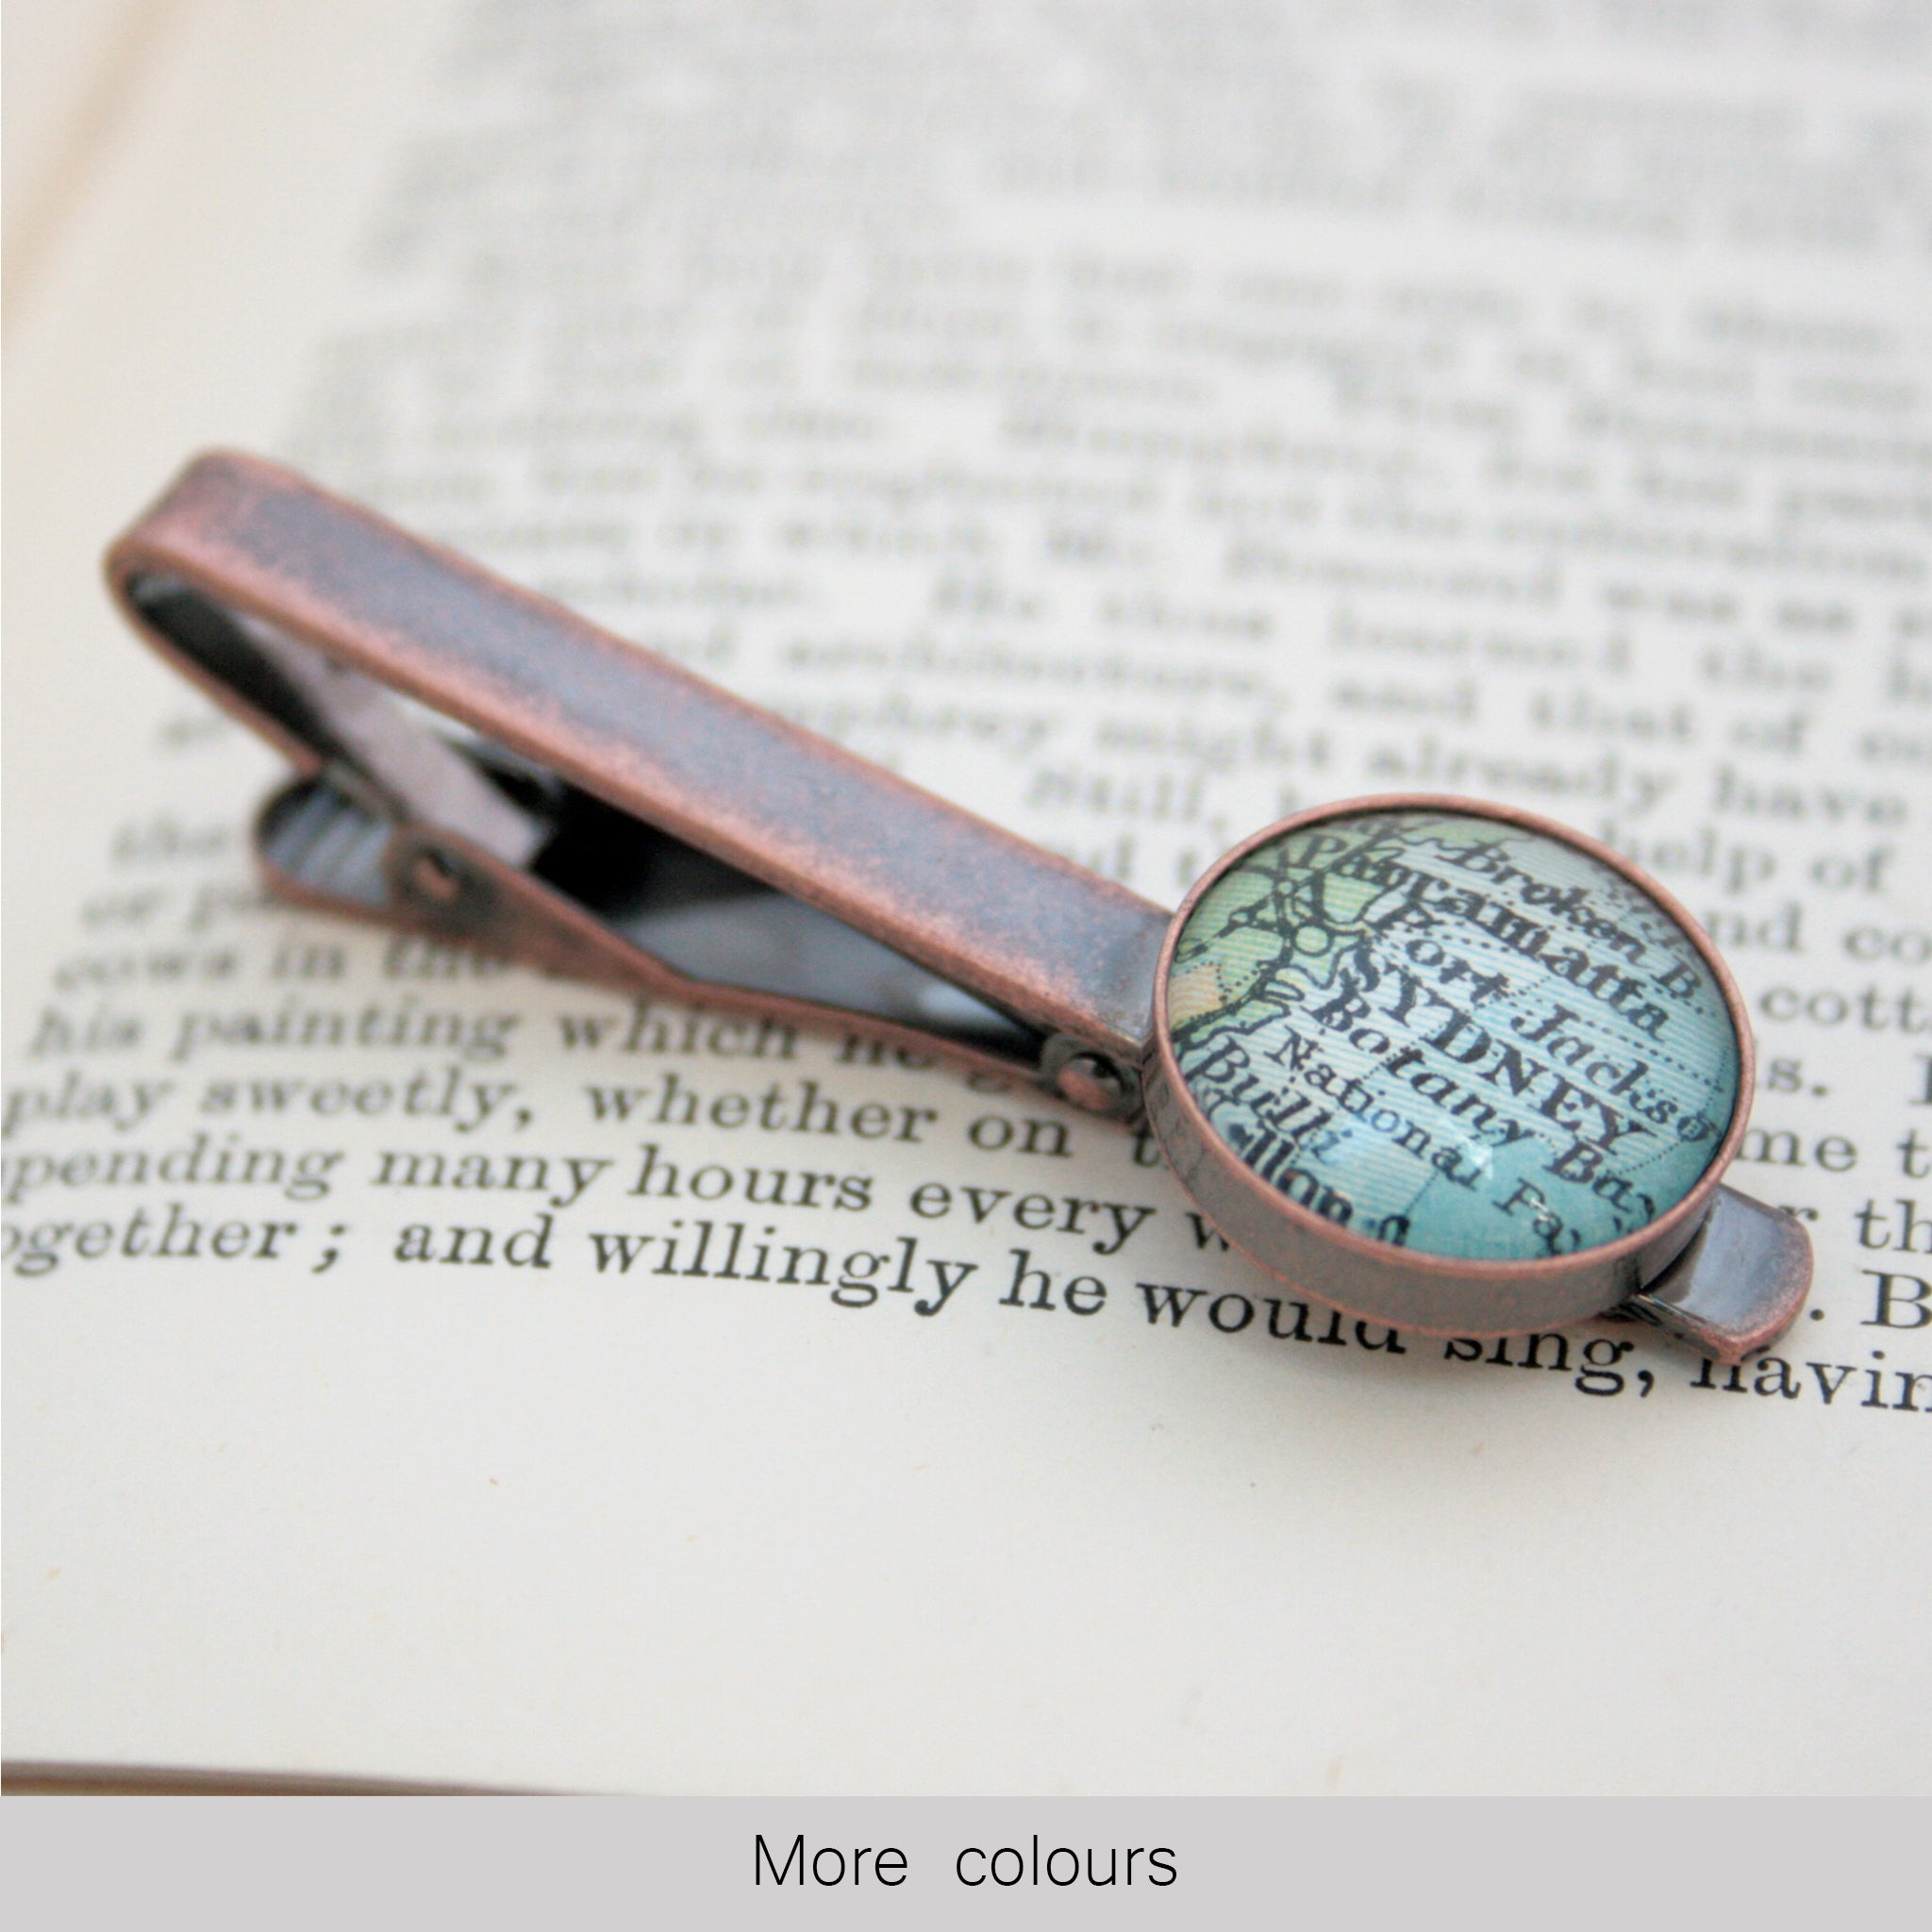 Personalised Tie Clip in copper color featuring map of Sydney